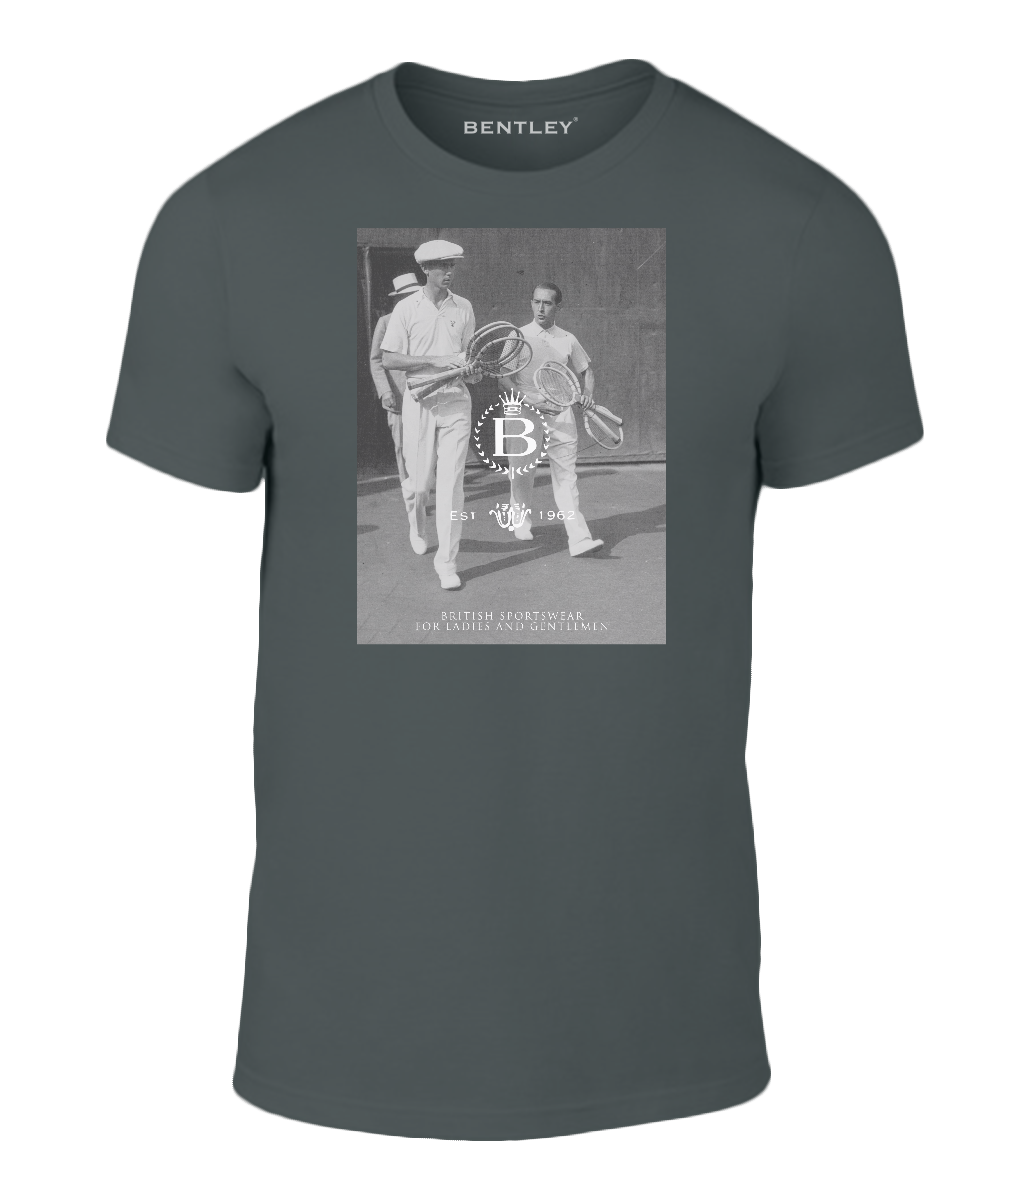 Children's Vintage Tennis T-Shirt